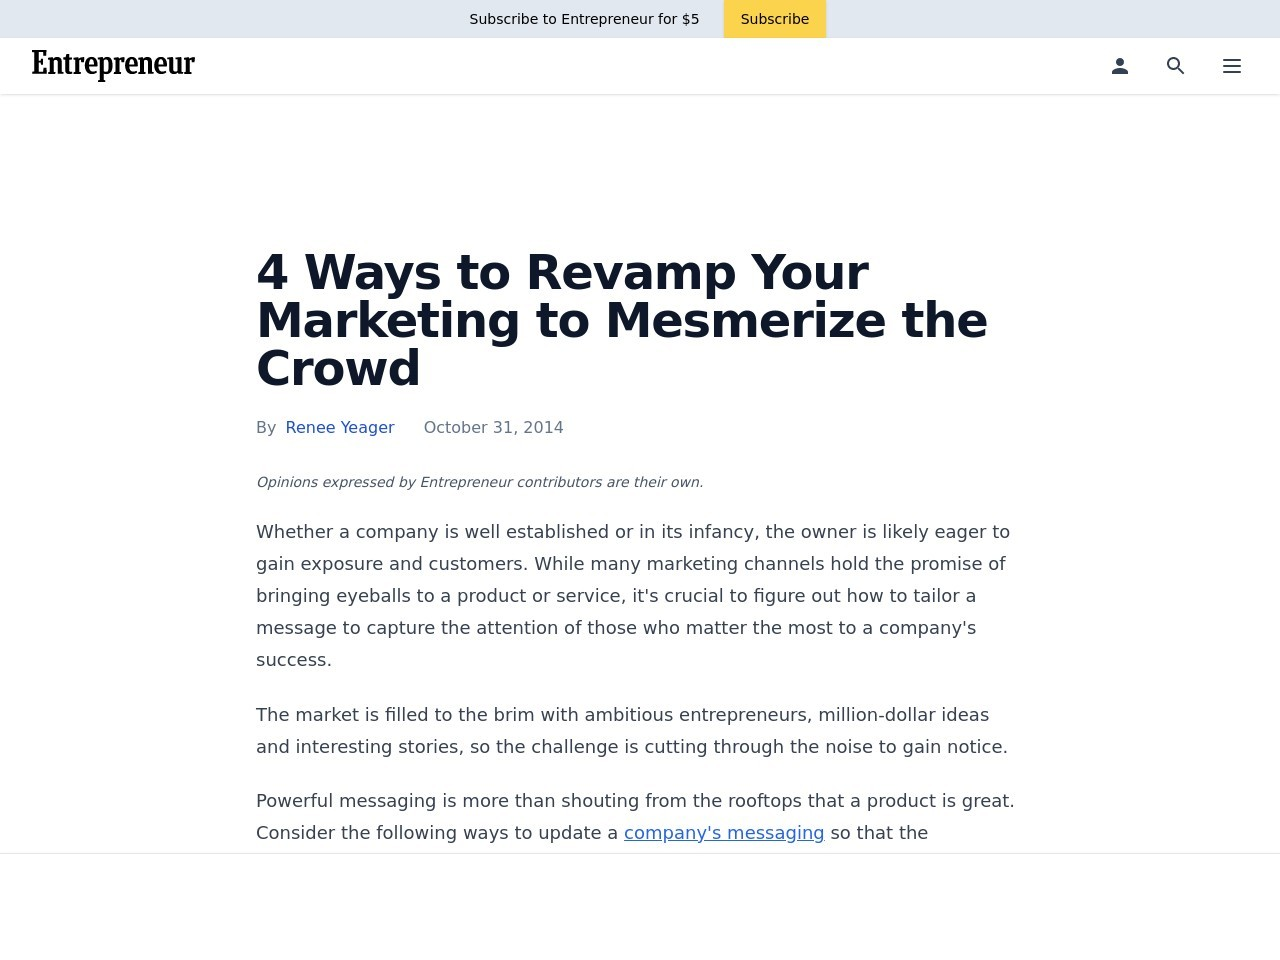 4 Ways to Revamp Your Marketing to Mesmerize the Crowd